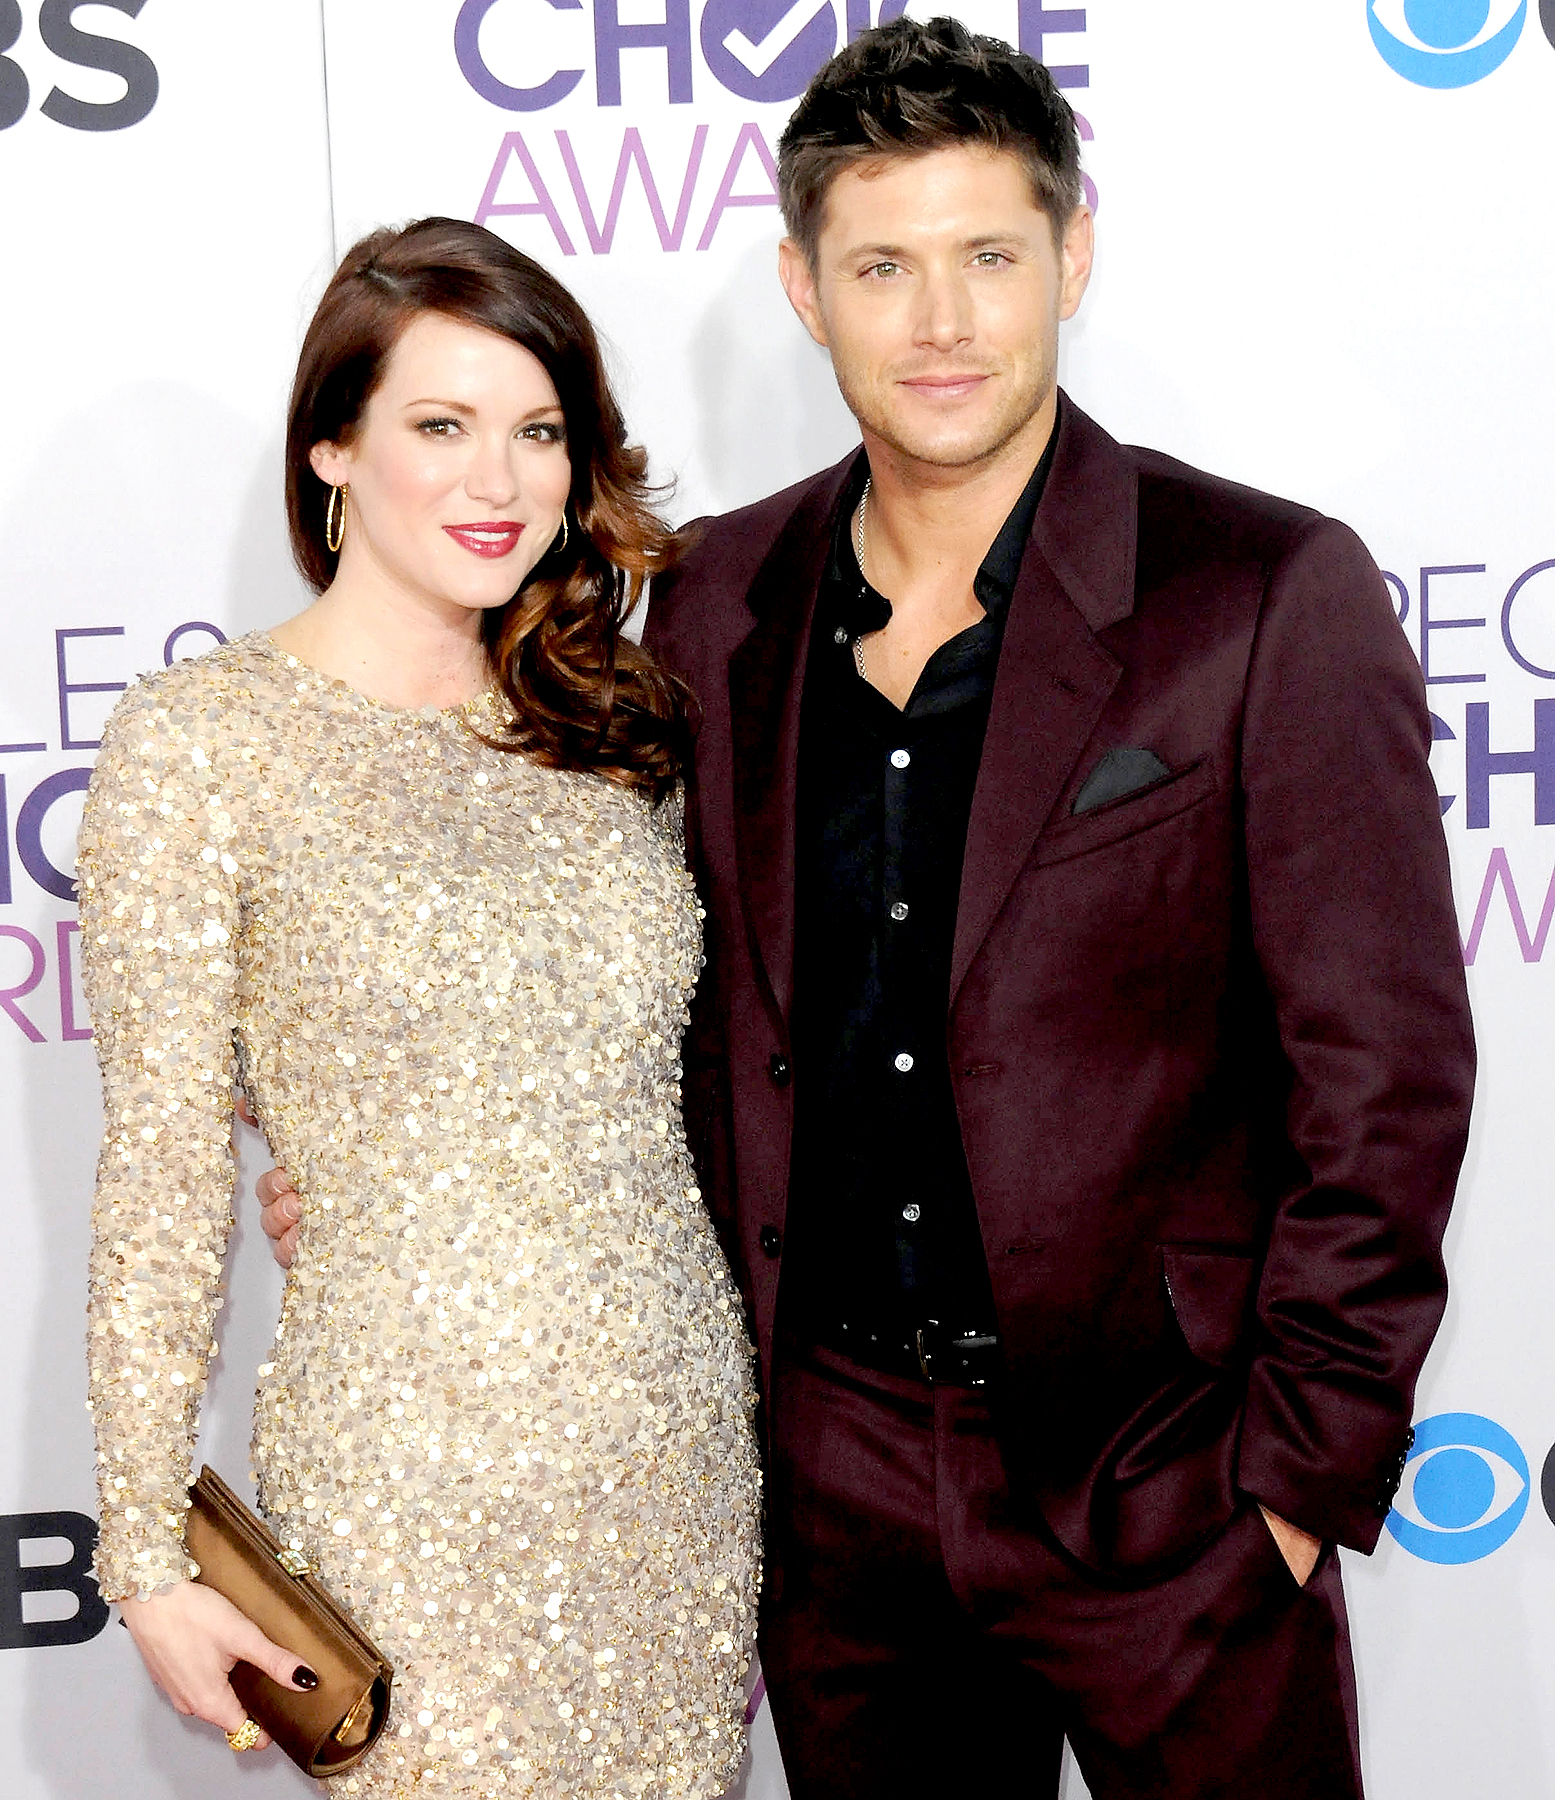 Danneel Harris and Jensen Ackles arrive for the 34th Annual People's Choice Awards - Arrivals held at Nokia Theater at L.A. Live on January 9, 2013 in Los Angeles, California.